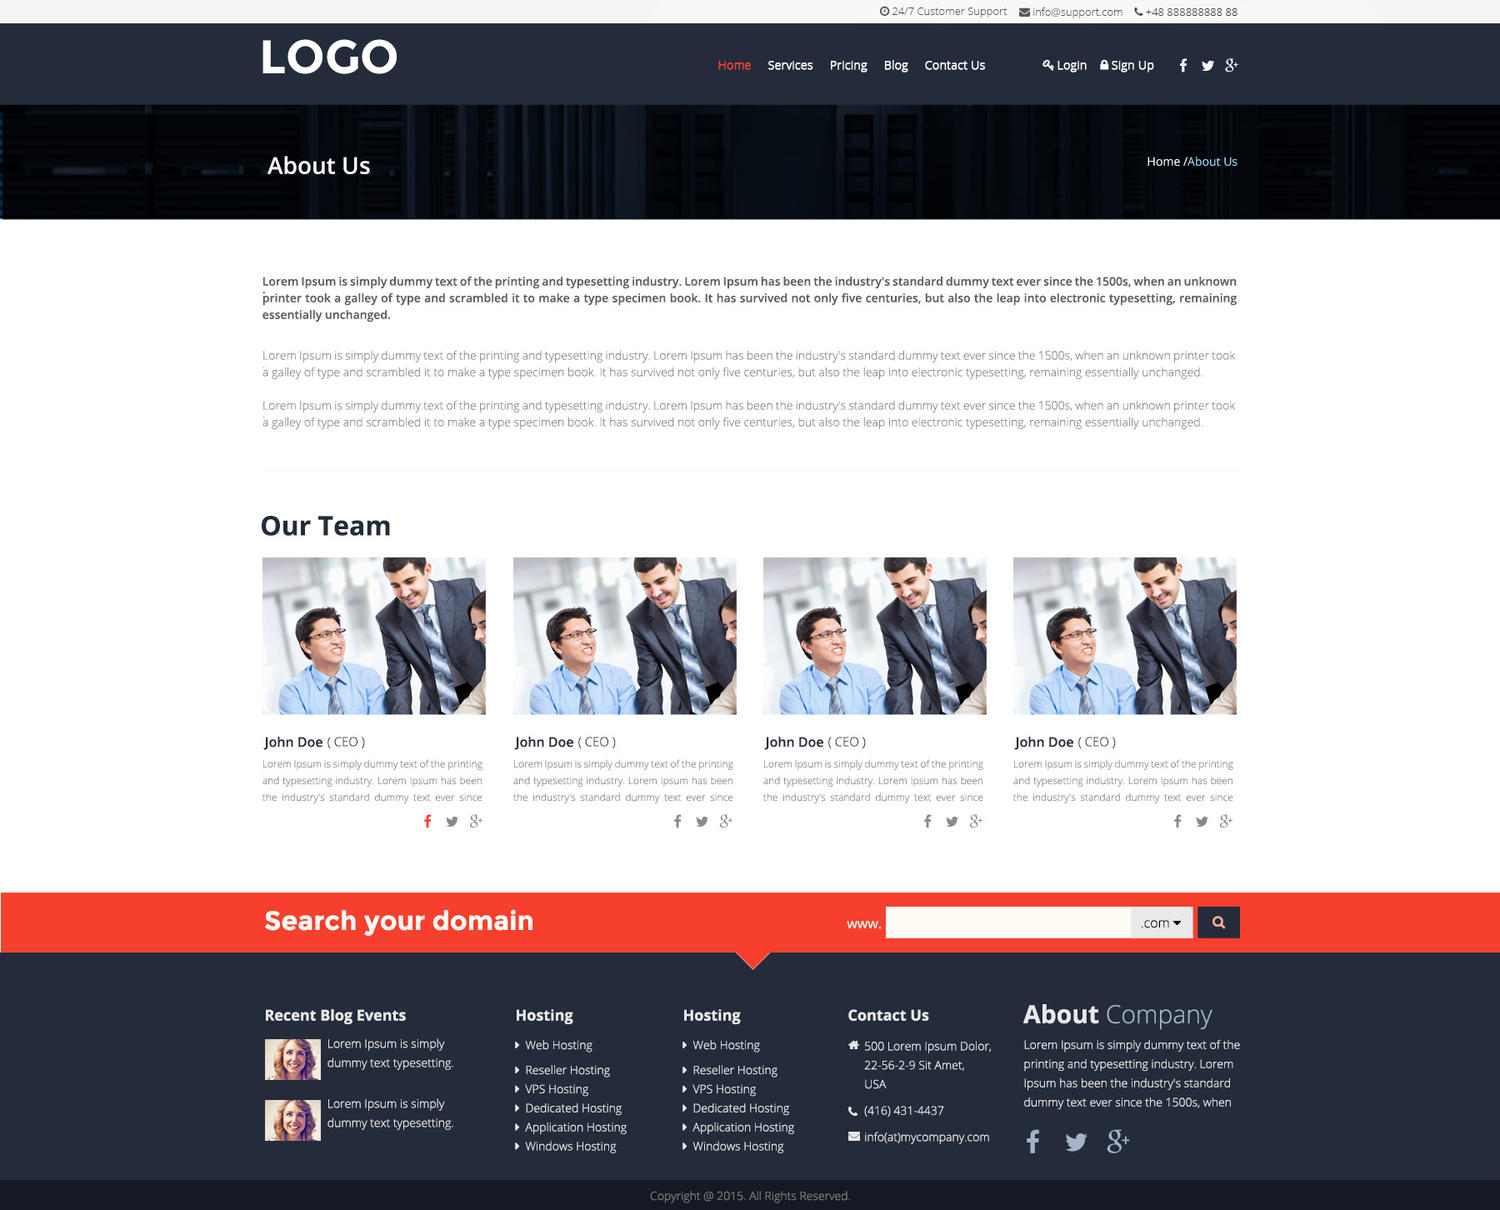 PSD Website Design by Nofomsok - 84416